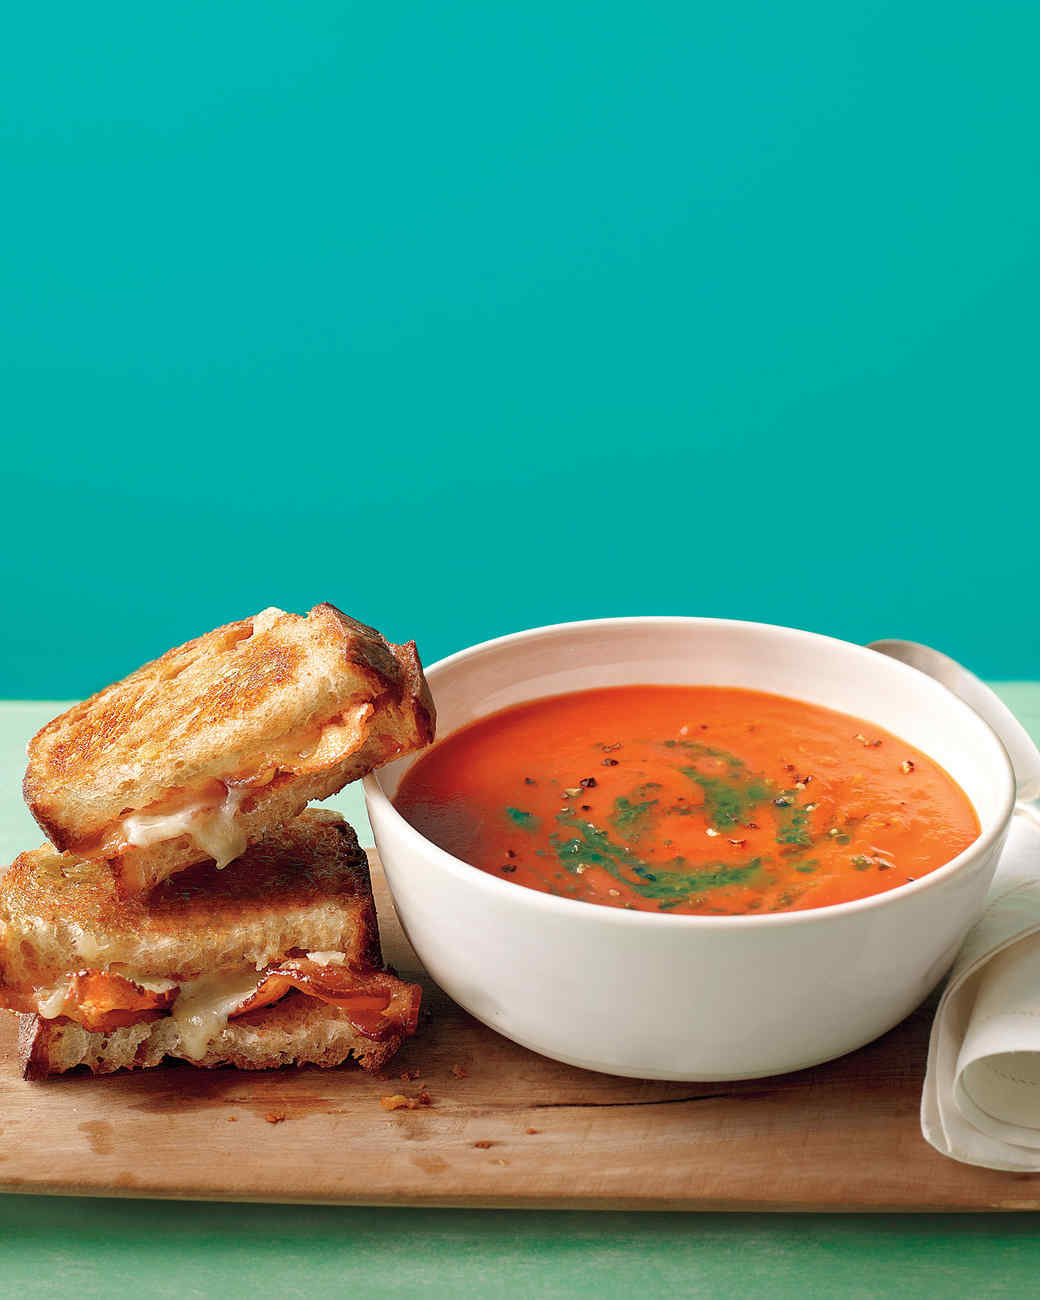 Tomato Soup with Bacon Grilled  Gourmet Grilled Cheese And Tomato Soup